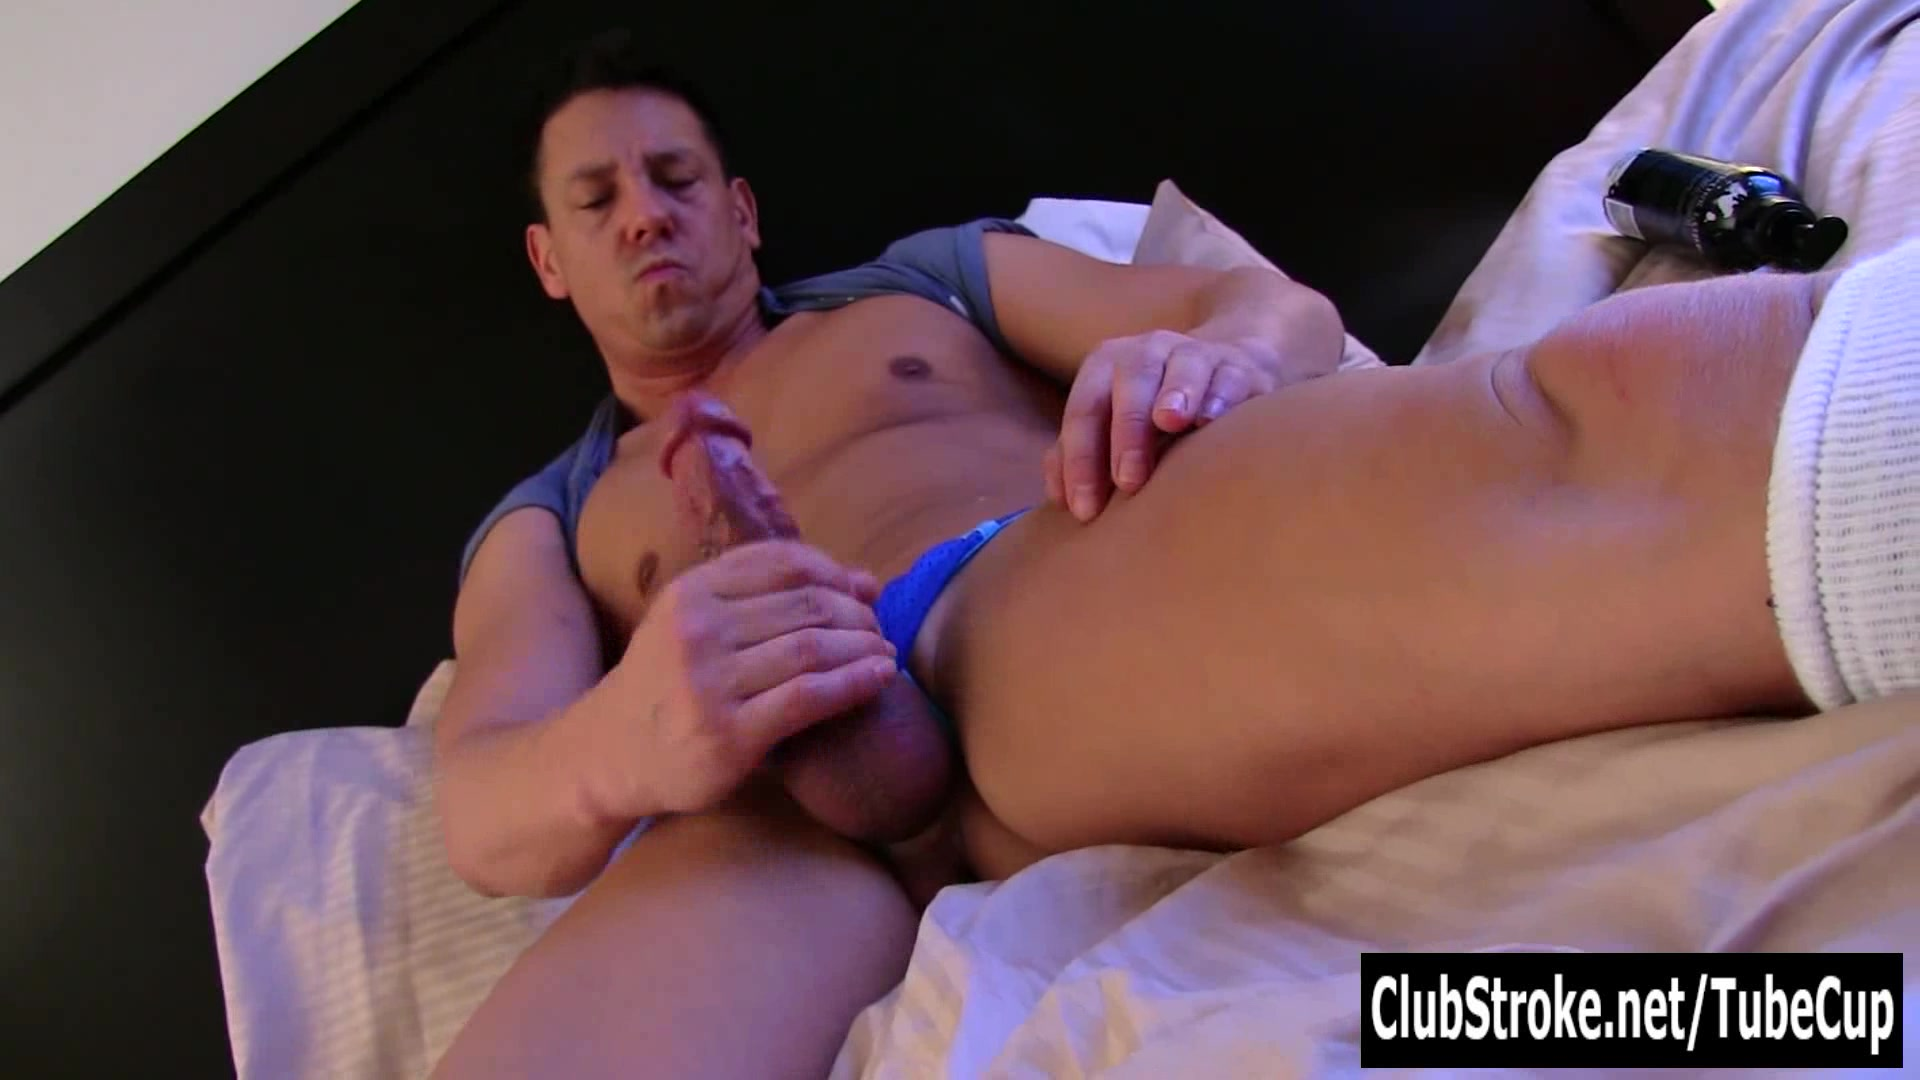 Handsome Straight Ryan Jerks His Giant Cock porn gay monster cock